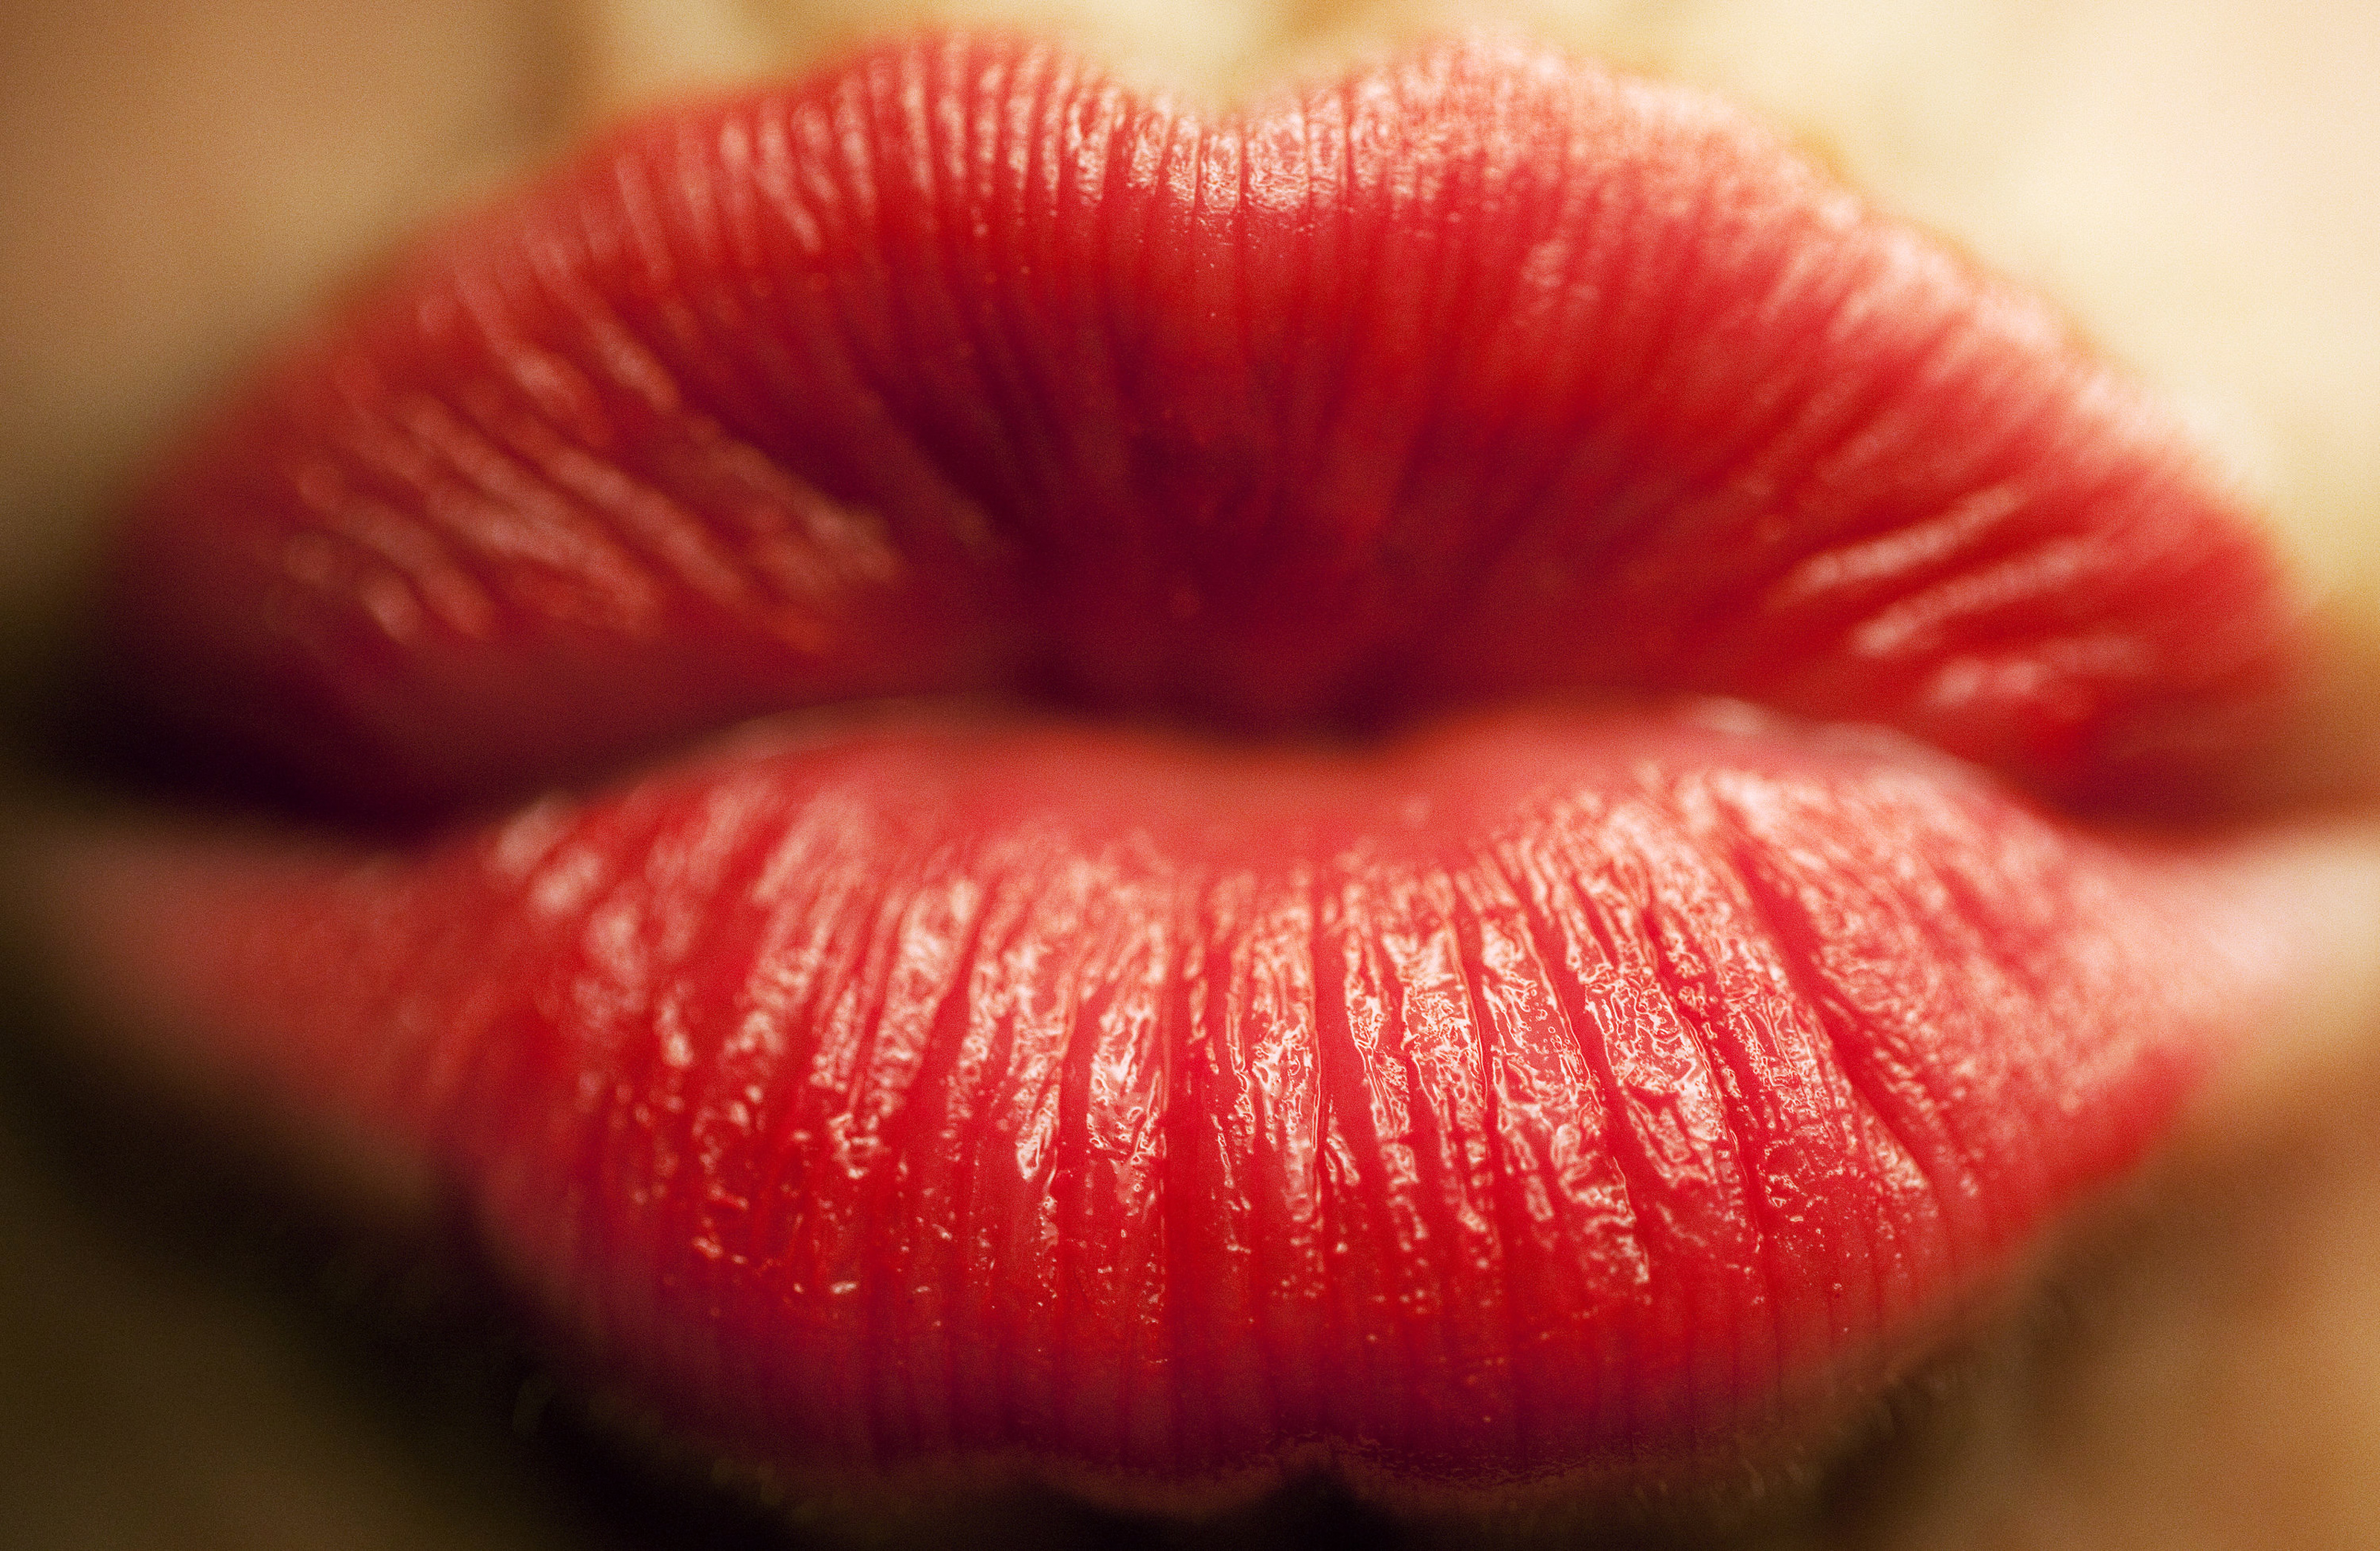 What to do with tongue when kissing